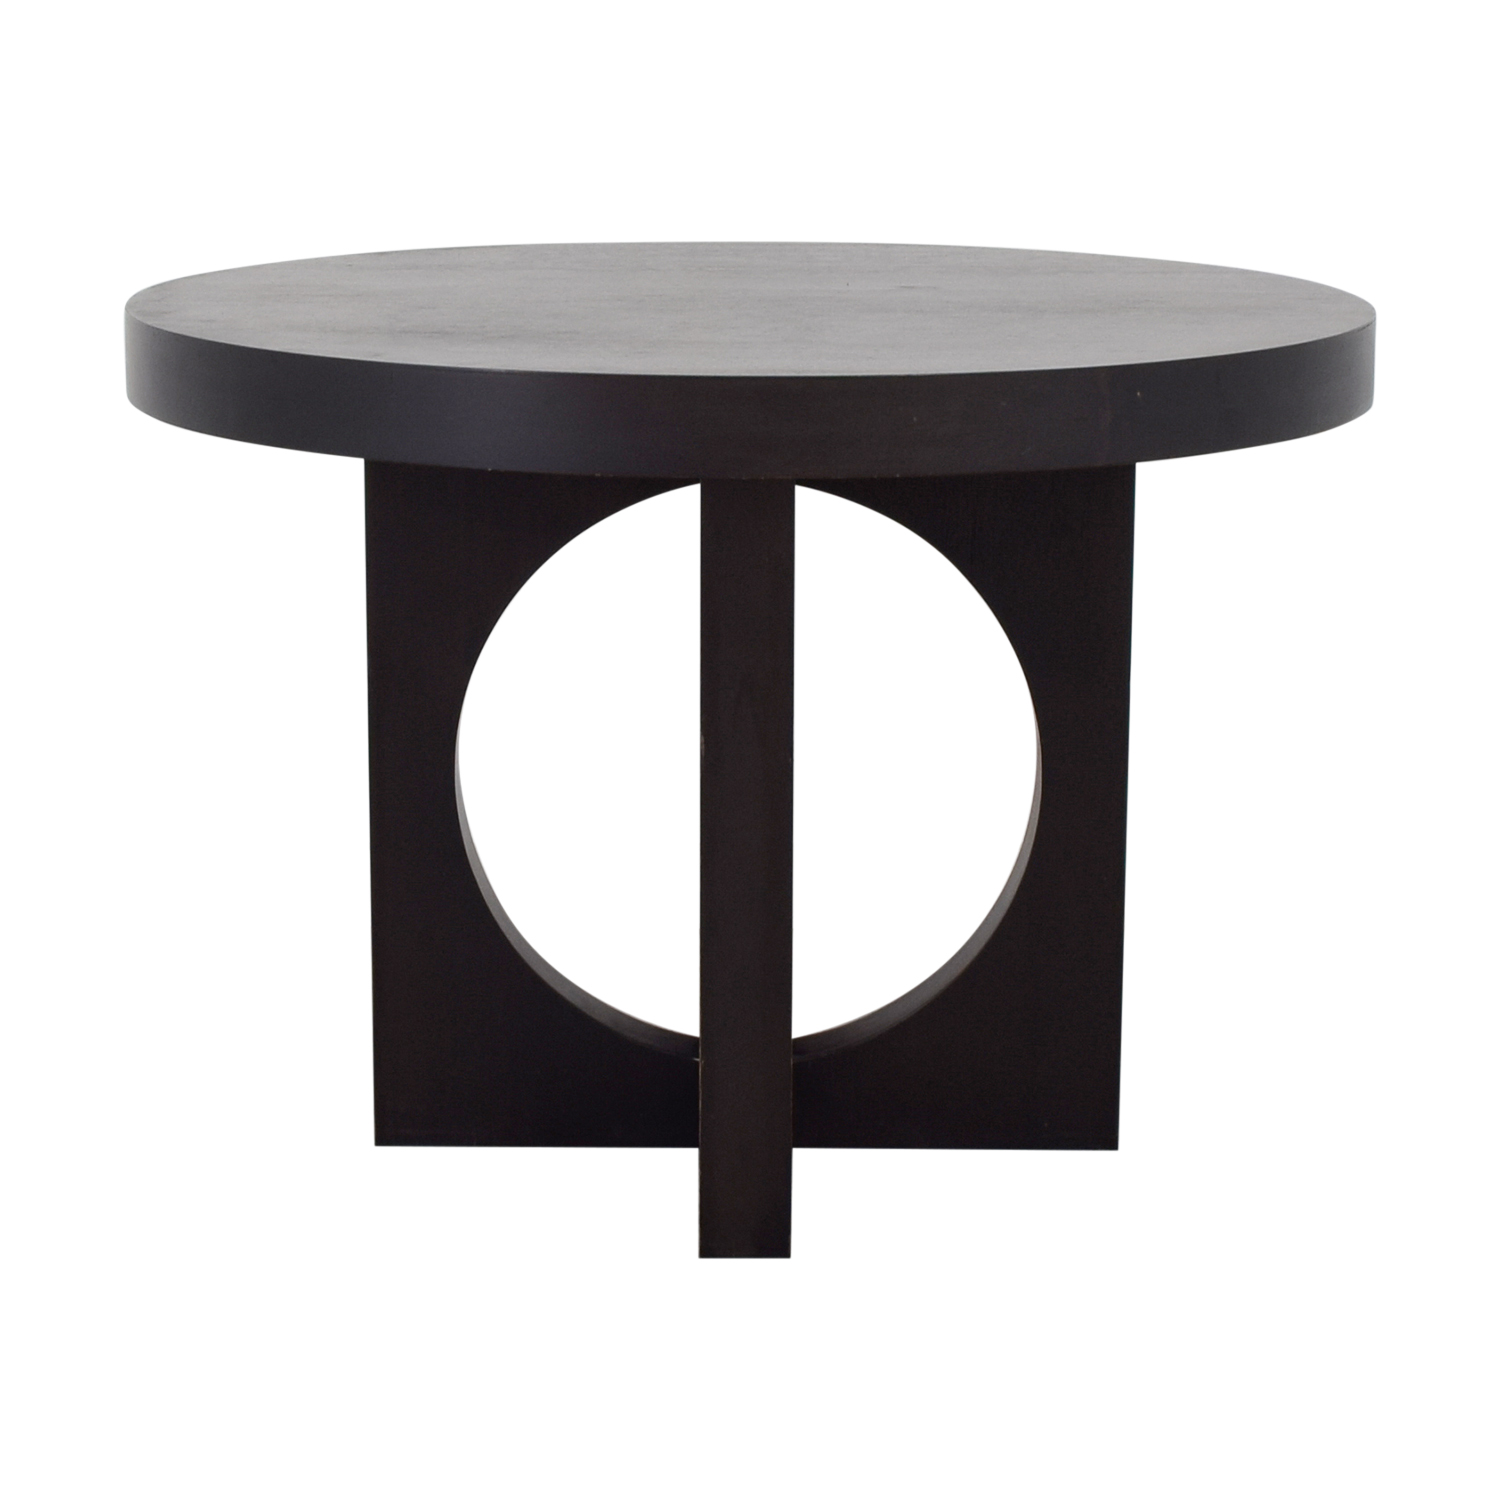 West elm west elm black round dining table for sale